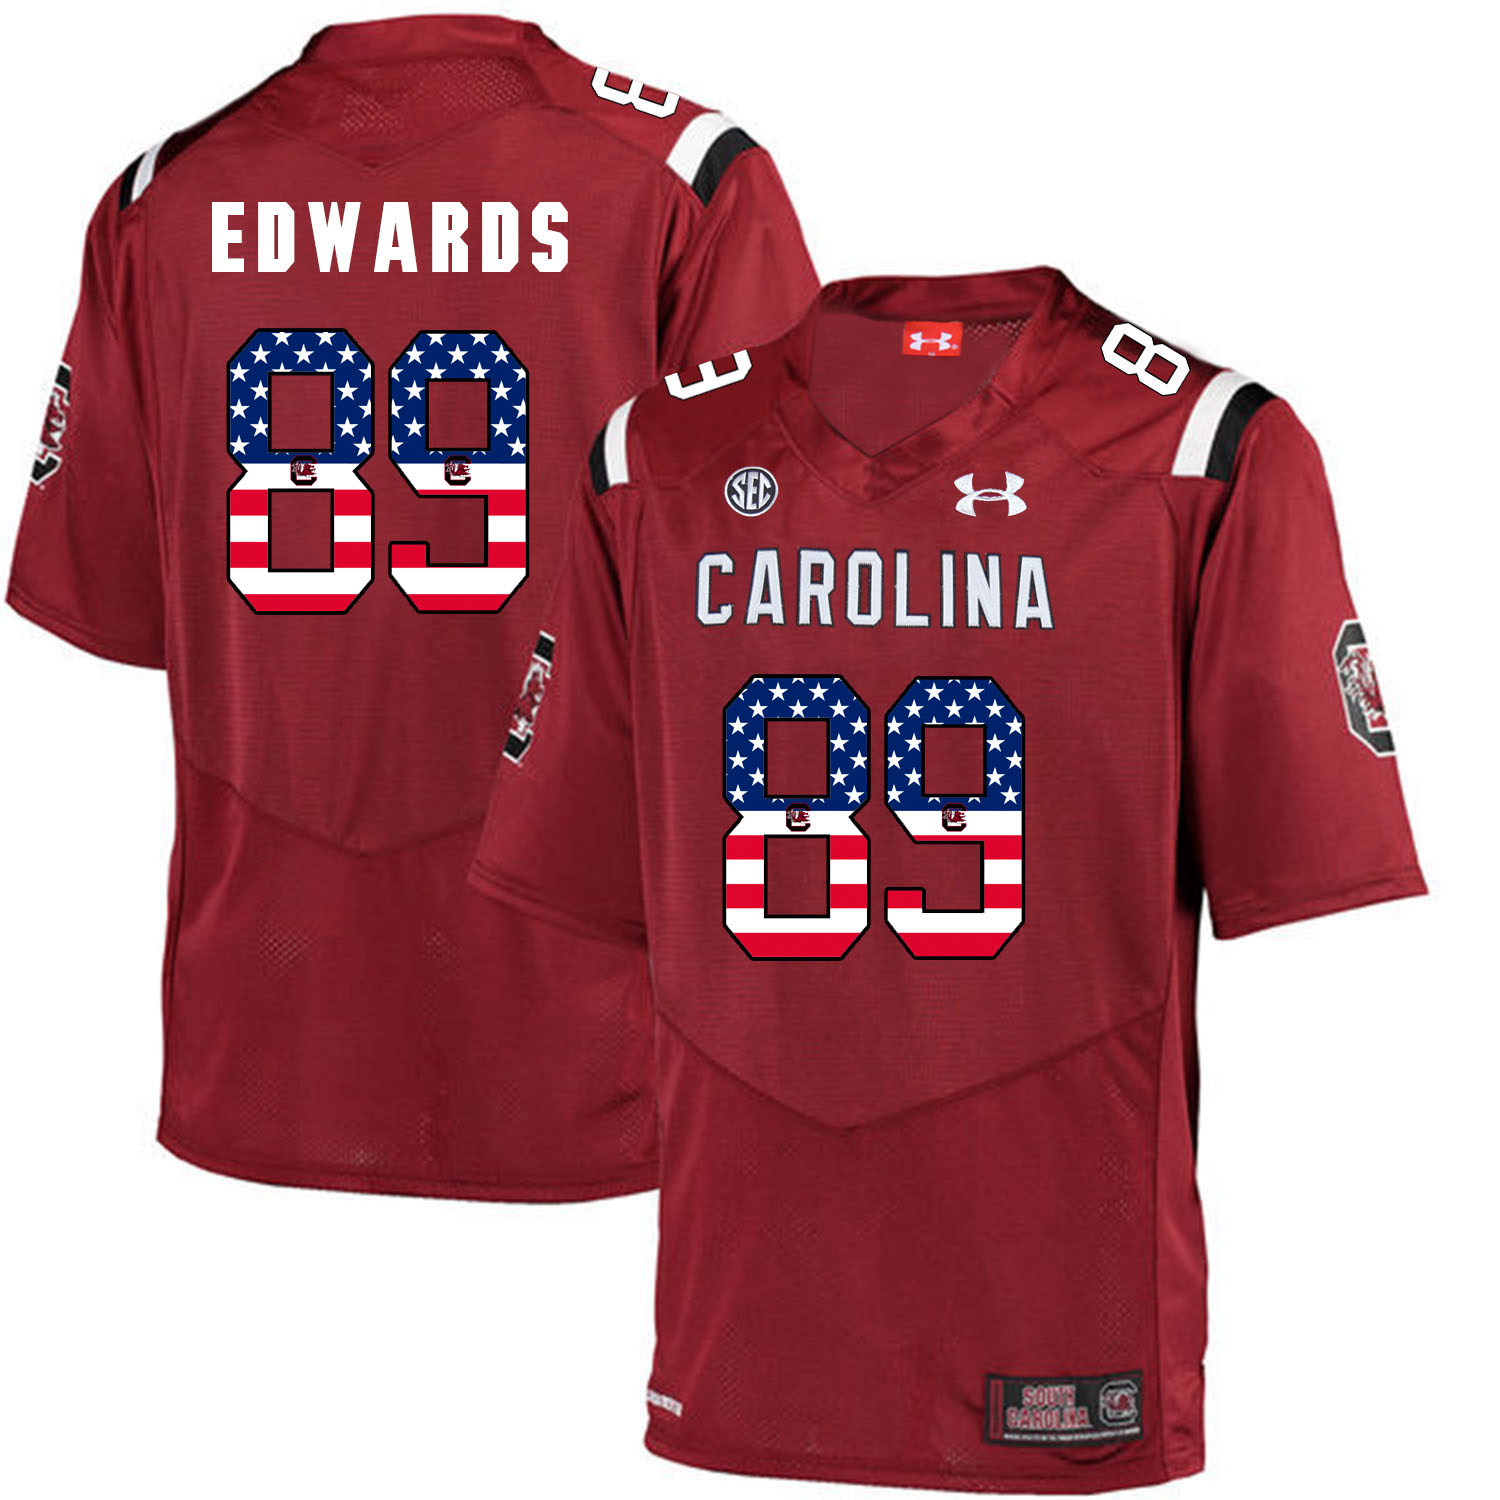 South Carolina Gamecocks 89 Bryan Edwards Red USA Flag College Football Jersey